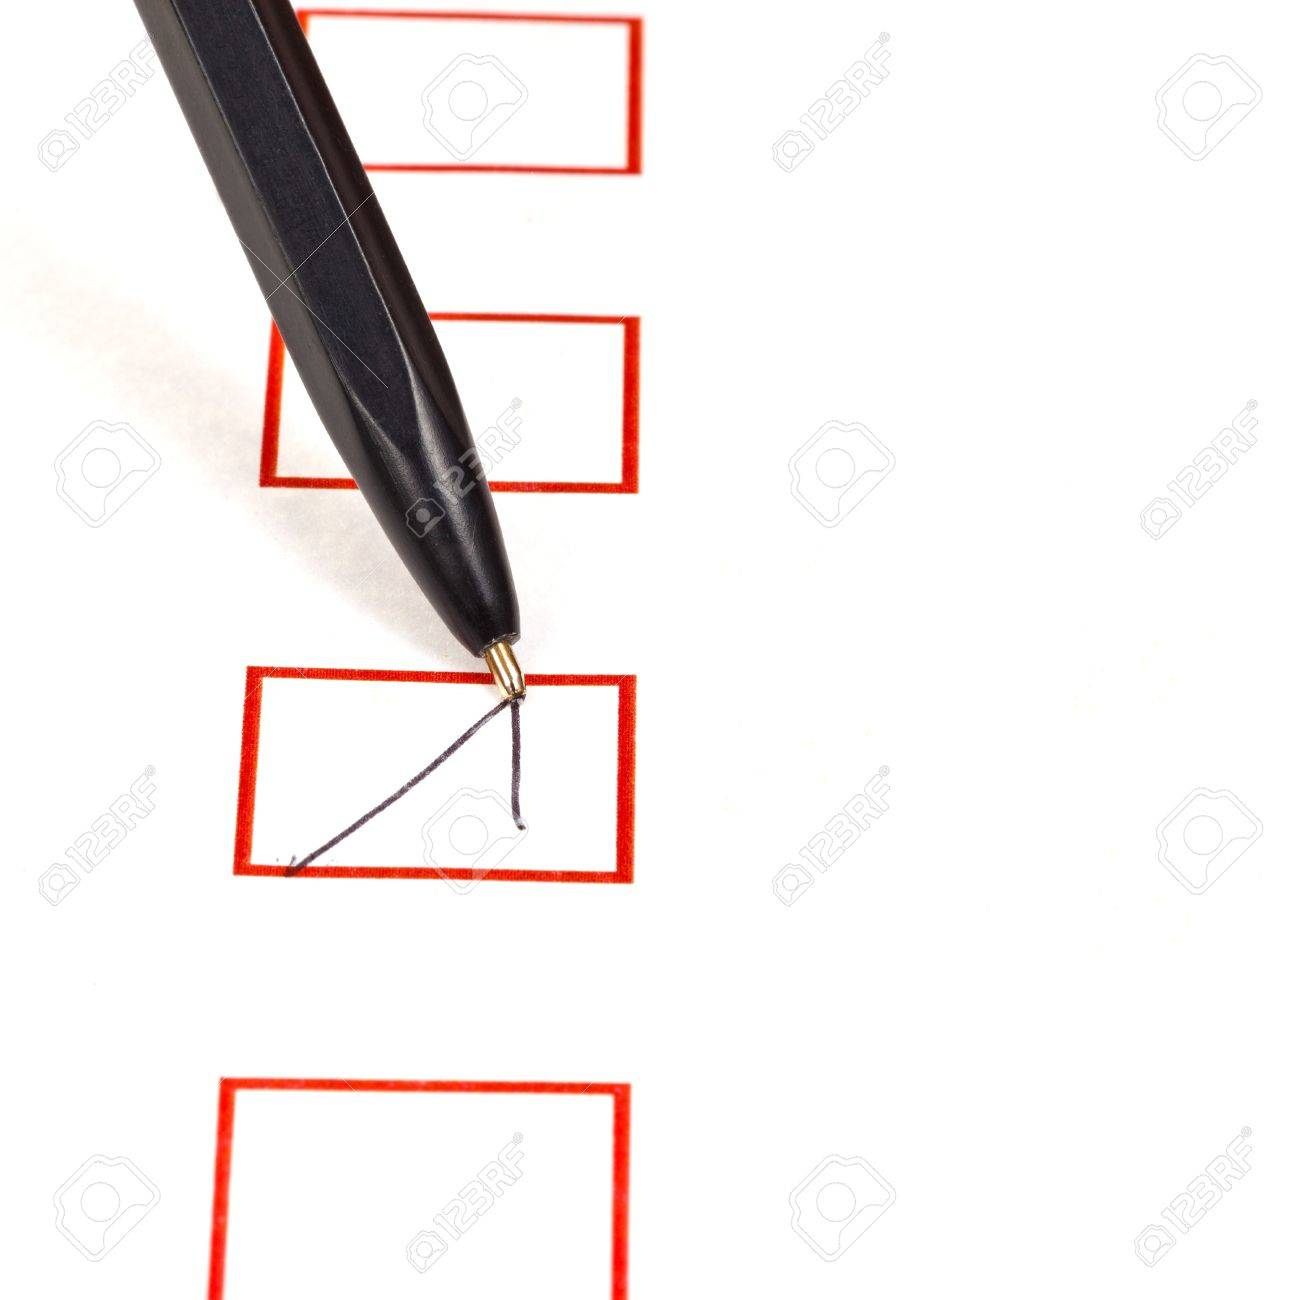 tick in red square box by simple black ballpen Stock Photo - 18215127